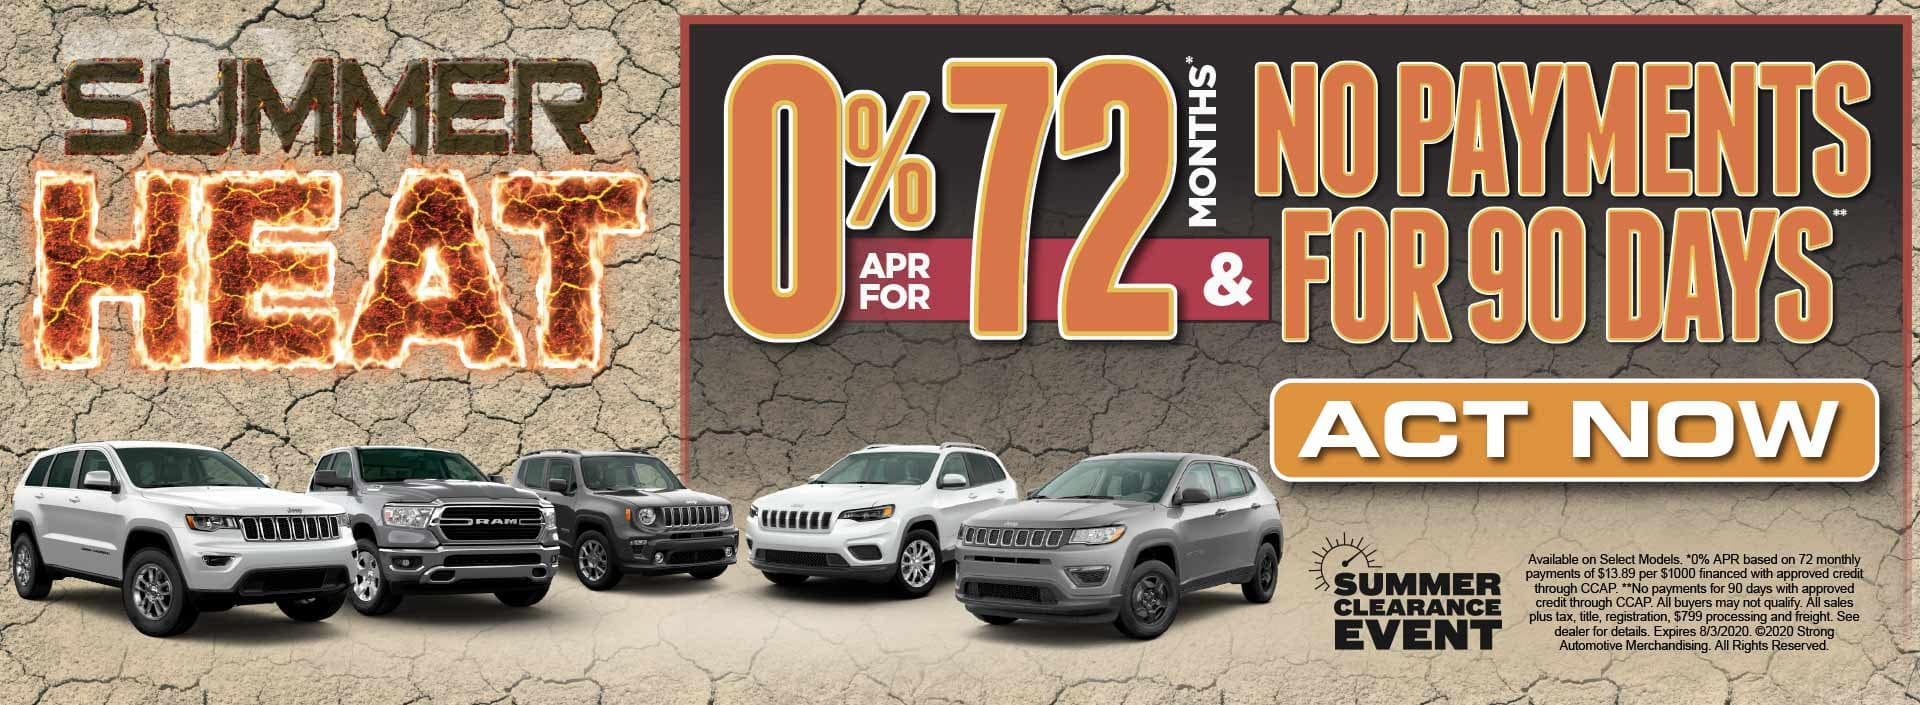 0% APR for 72 Mos* & No Payments for 90 Days** Act Now